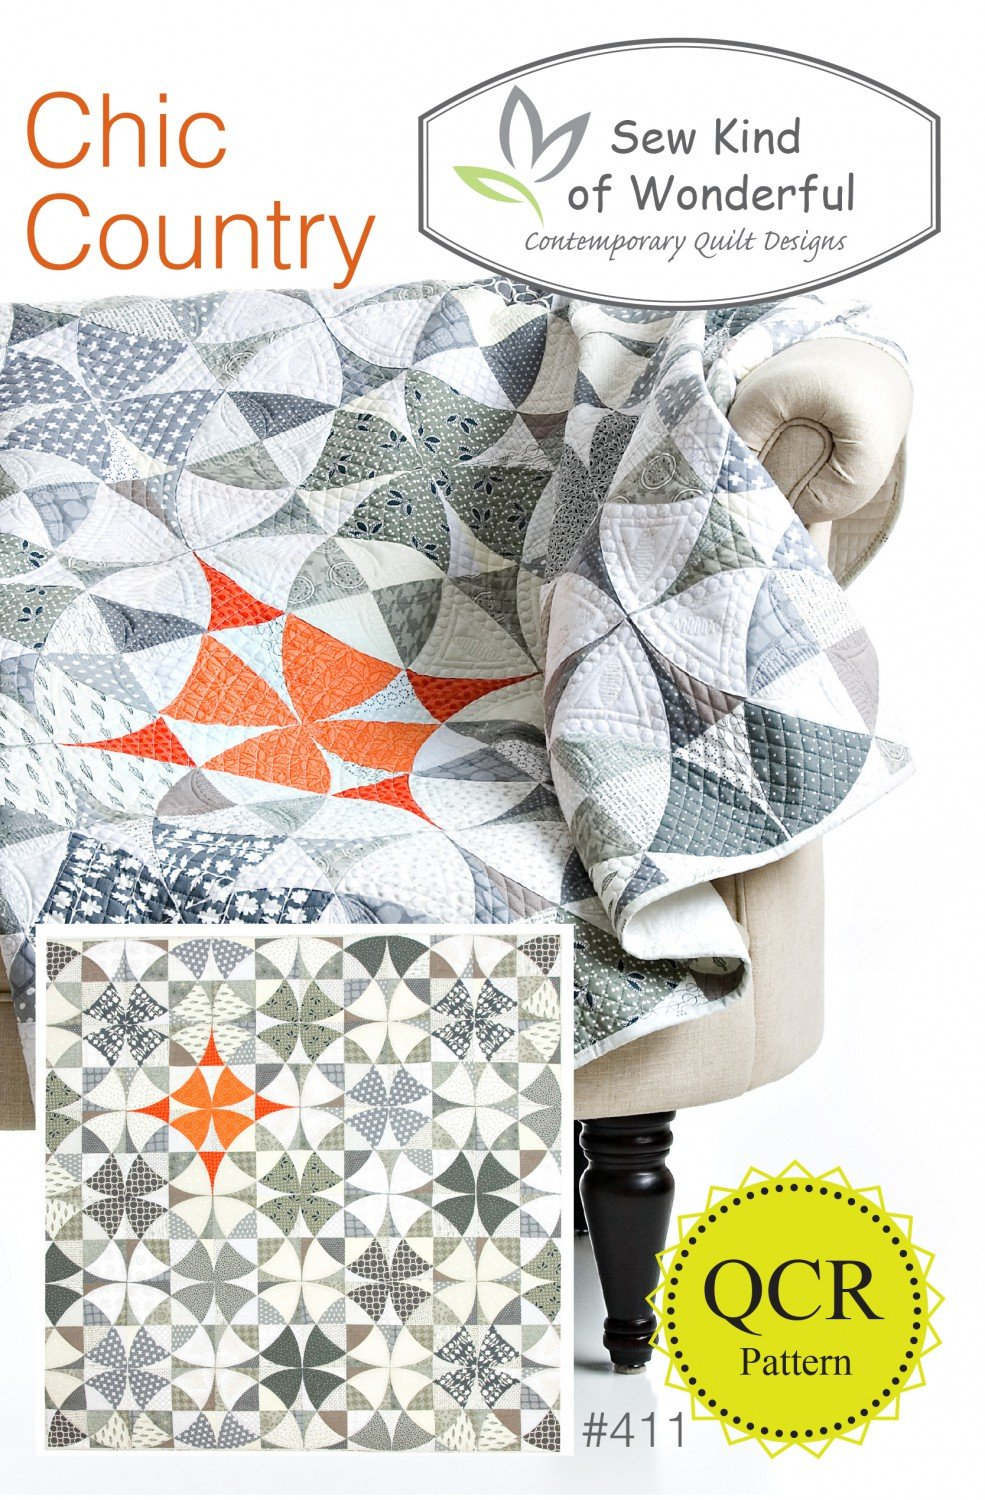 Sew Kind of Wonderful Chic Country